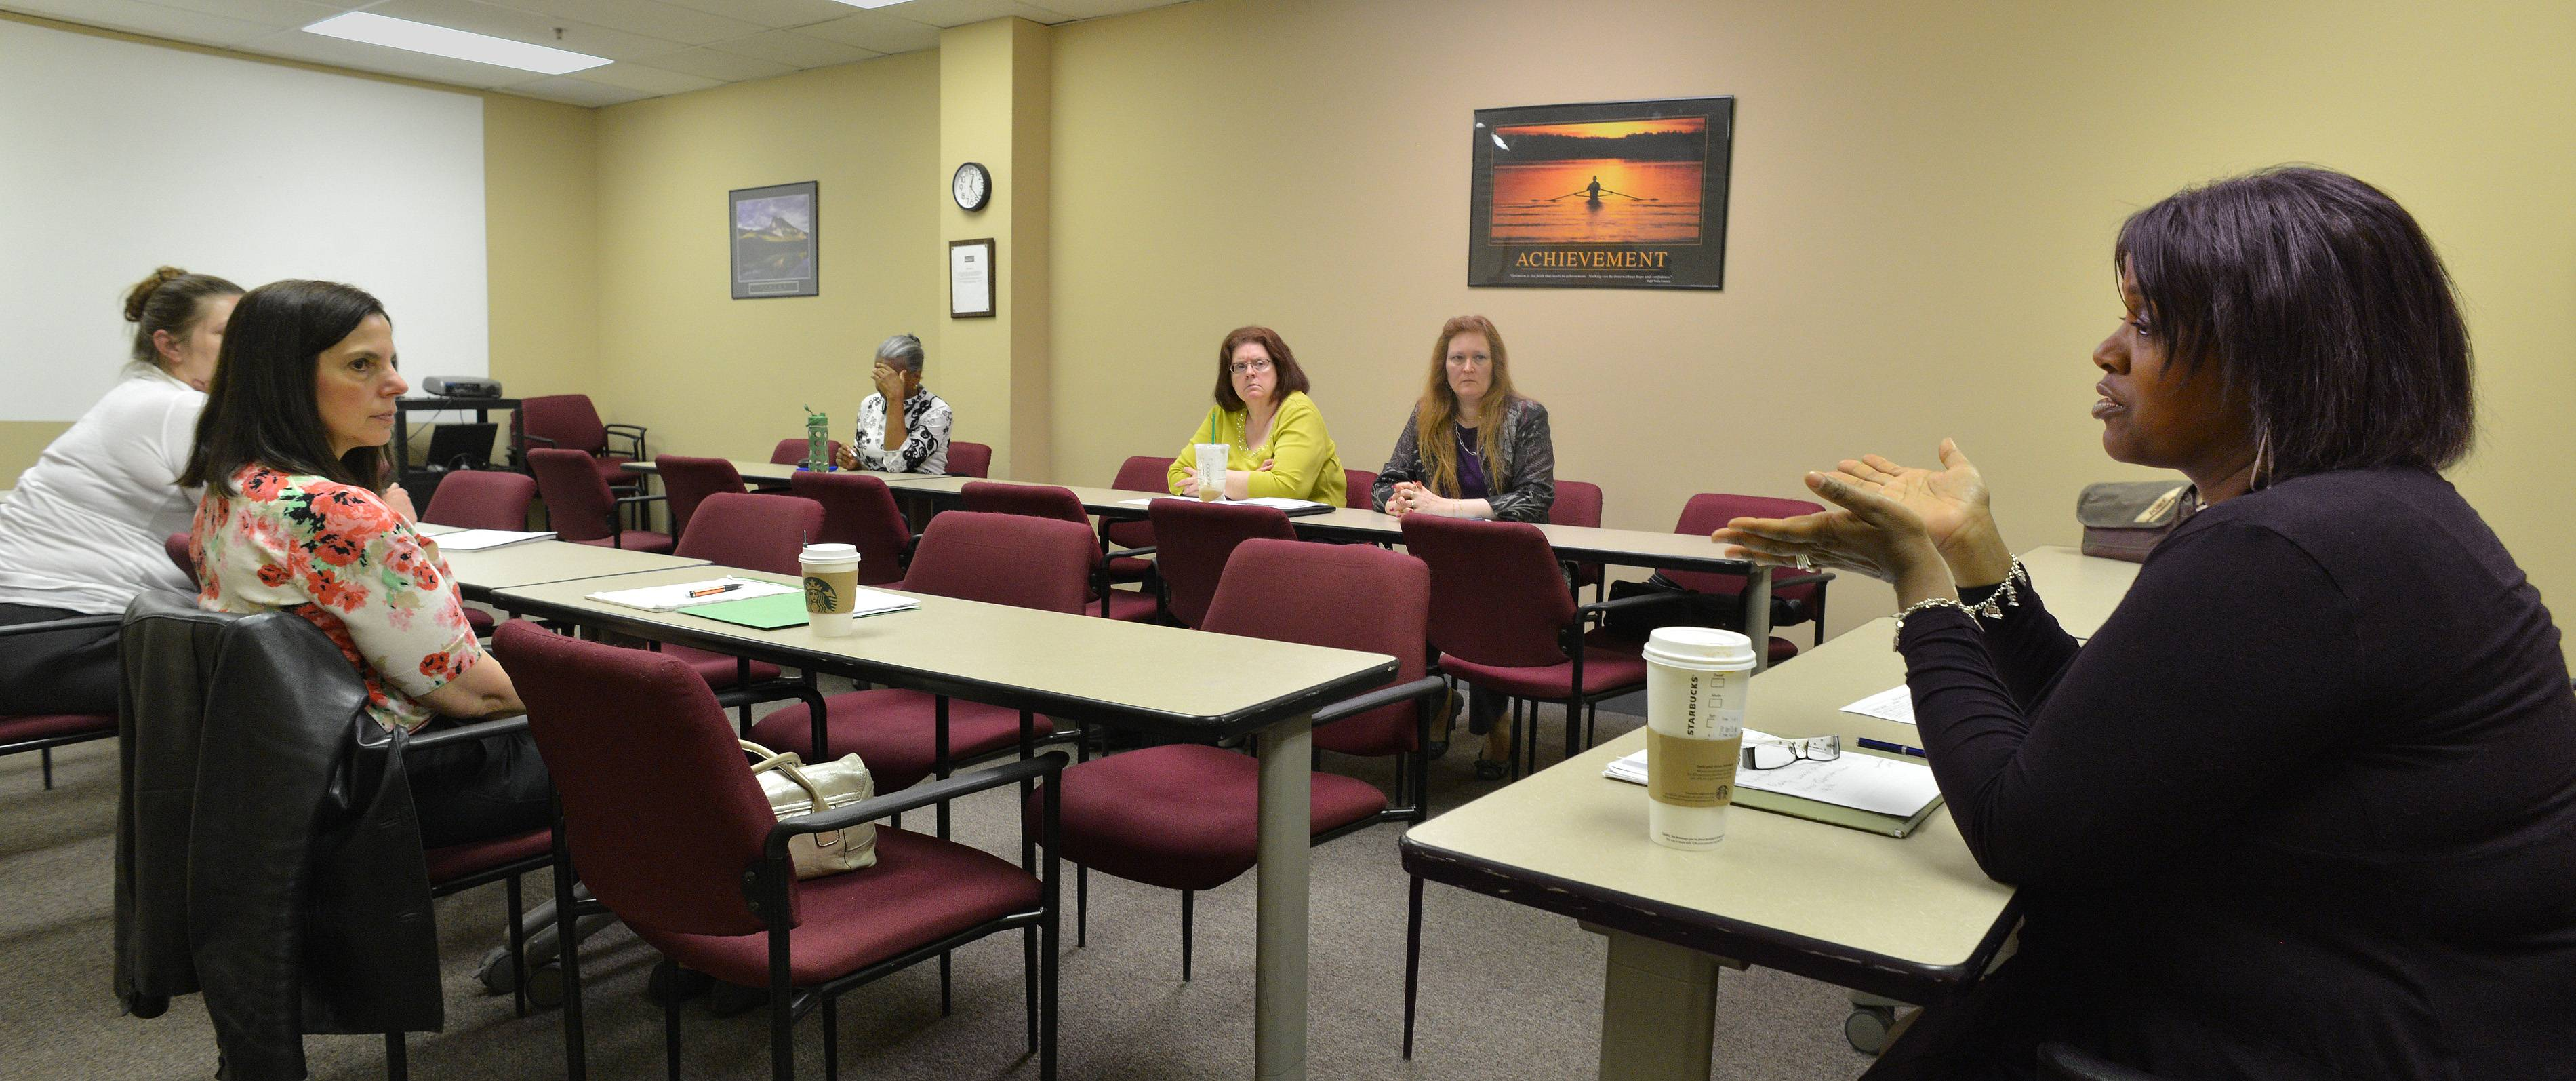 The Networking Opportunities for Women job search group meets in Naperville under the direction of Kimberly White, executive director of the Community Career Center. The group helps provide job search tips for moms returning to work and other women who are unemployed.